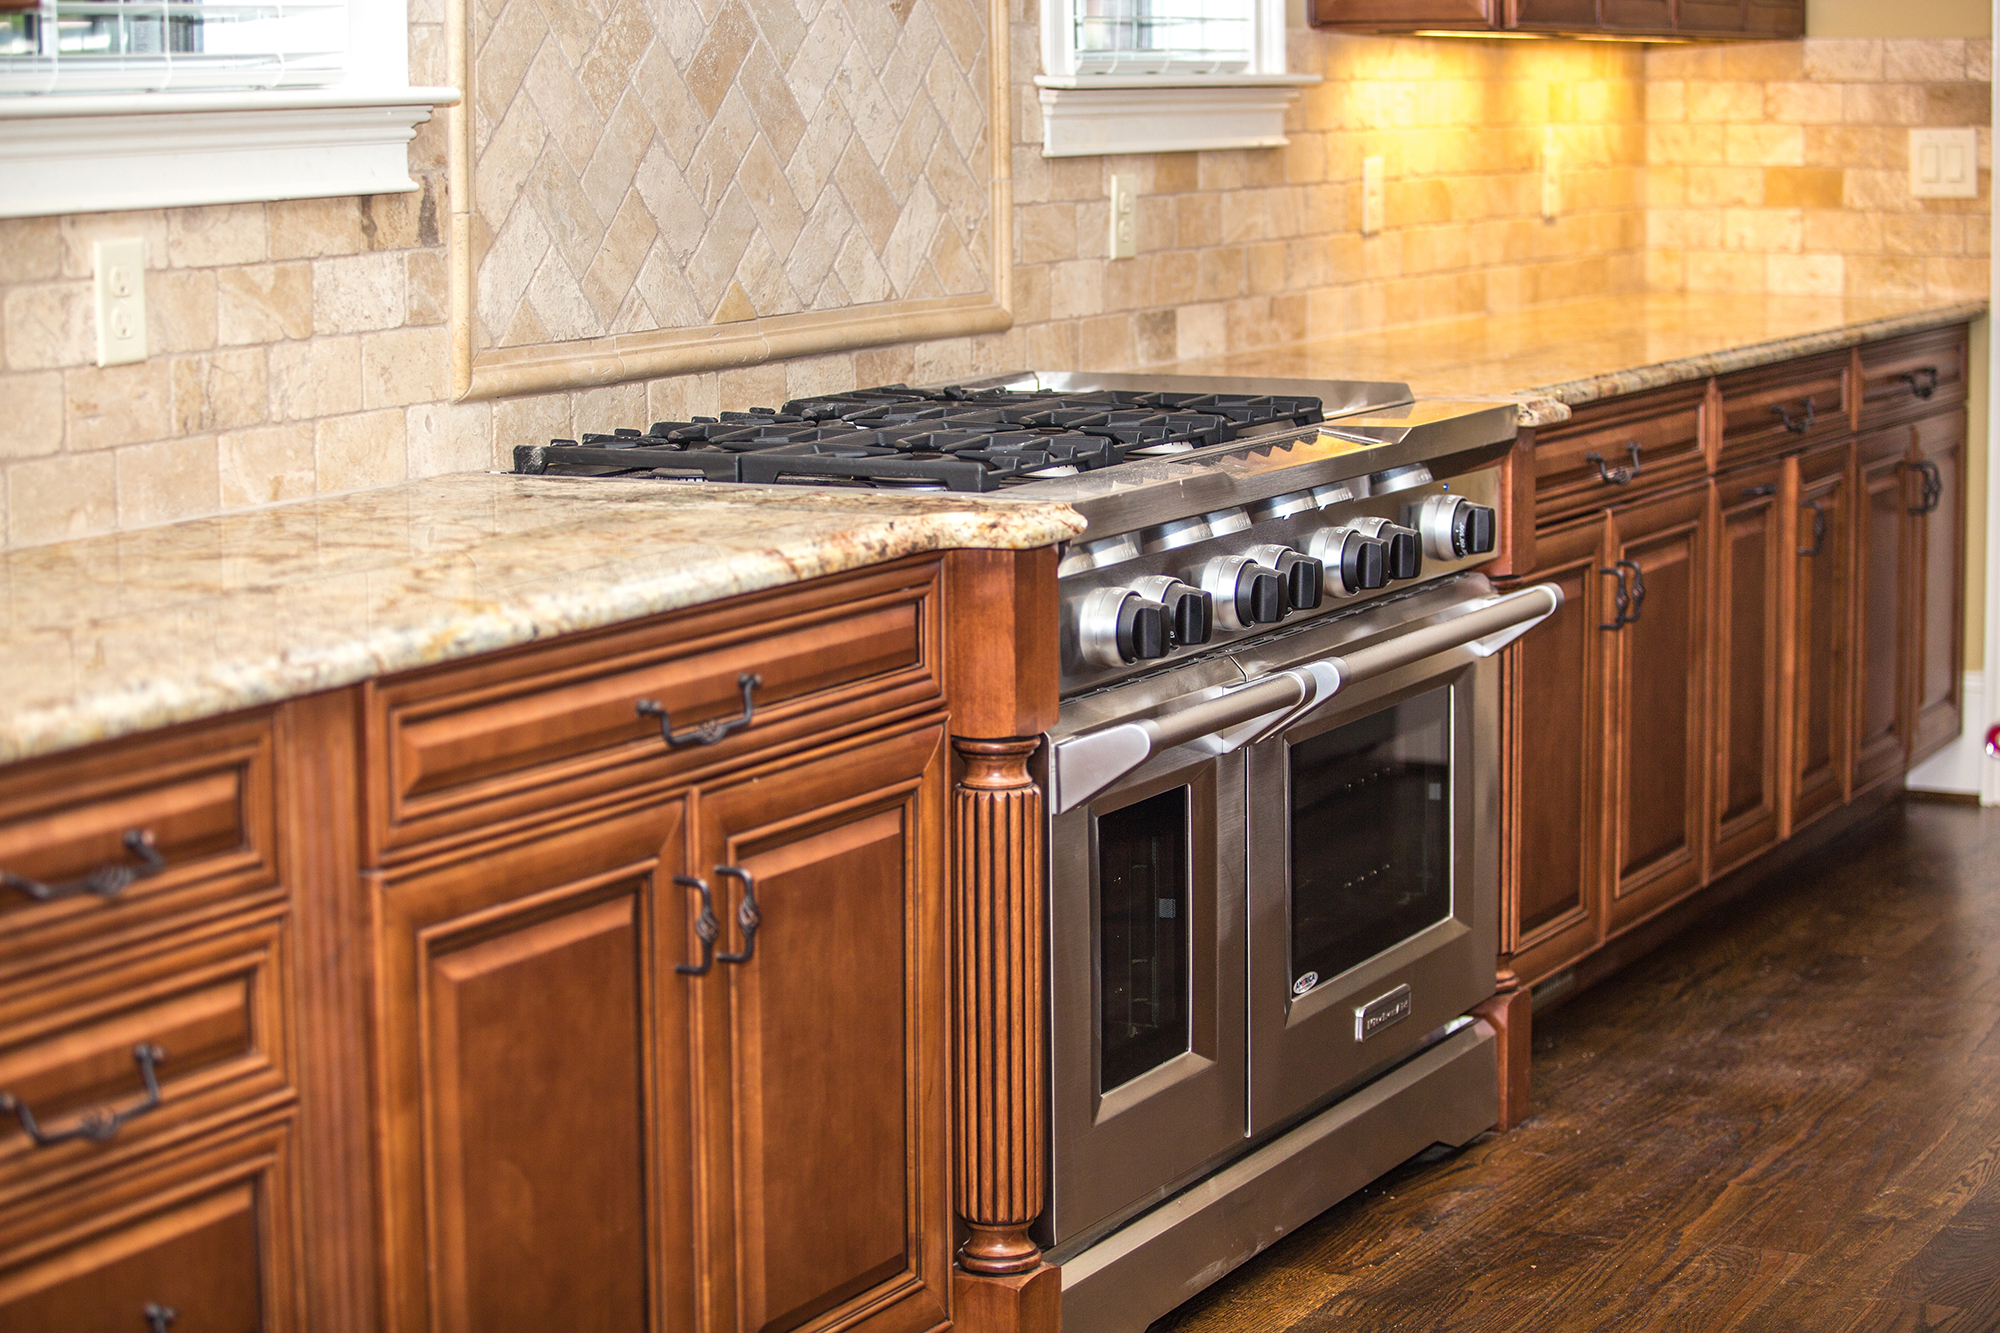 ... Modern Kitchen Remodel And Design With Quartz Countertops And Wooden  Cabinets